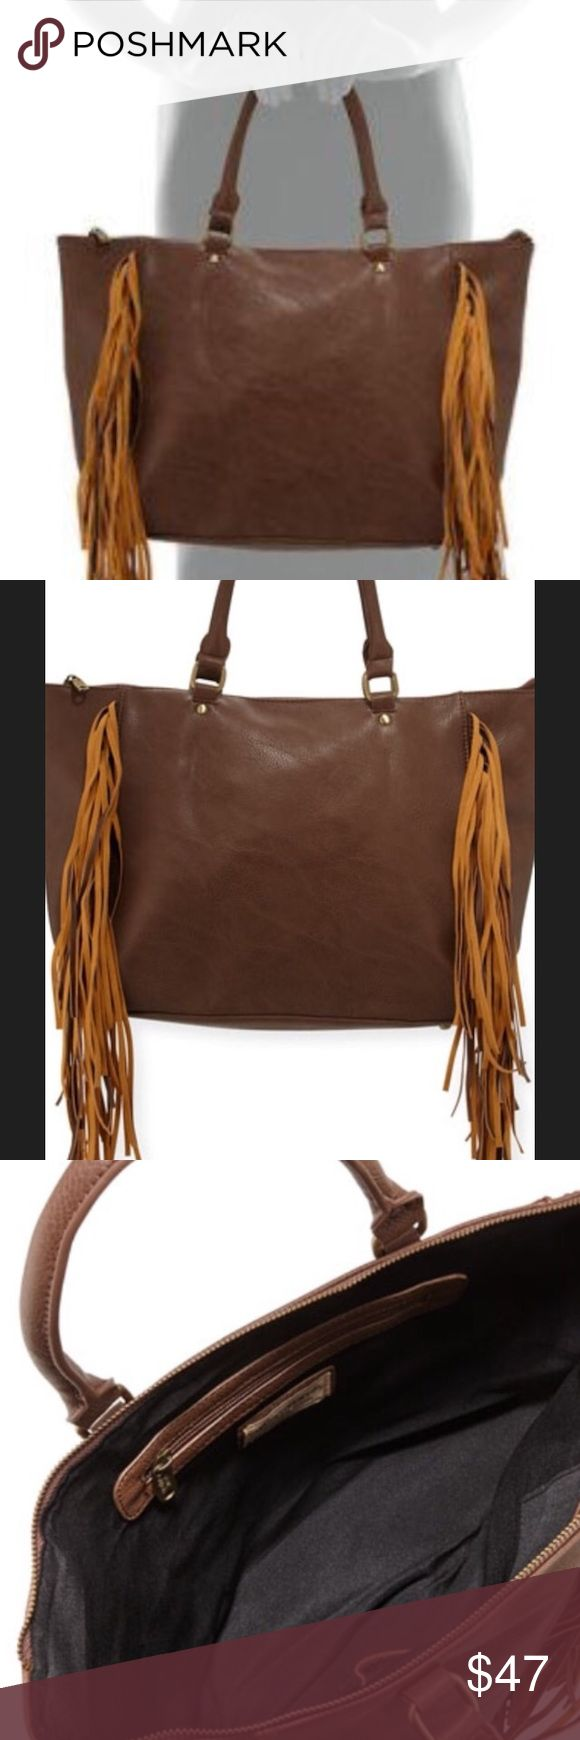 Urban Original Oasis Handbag with Fringe Leather soft as butter! Large enough to hold all your goodies and a small laptop.  Long Leather Fringe on front sides add extra Flare.  Gold hardware including feet buttons to protect your bag. Dust cover included   Color shown: Latte. Also available in Nude or Black  NWT Urban Originals Bags Shoulder Bags